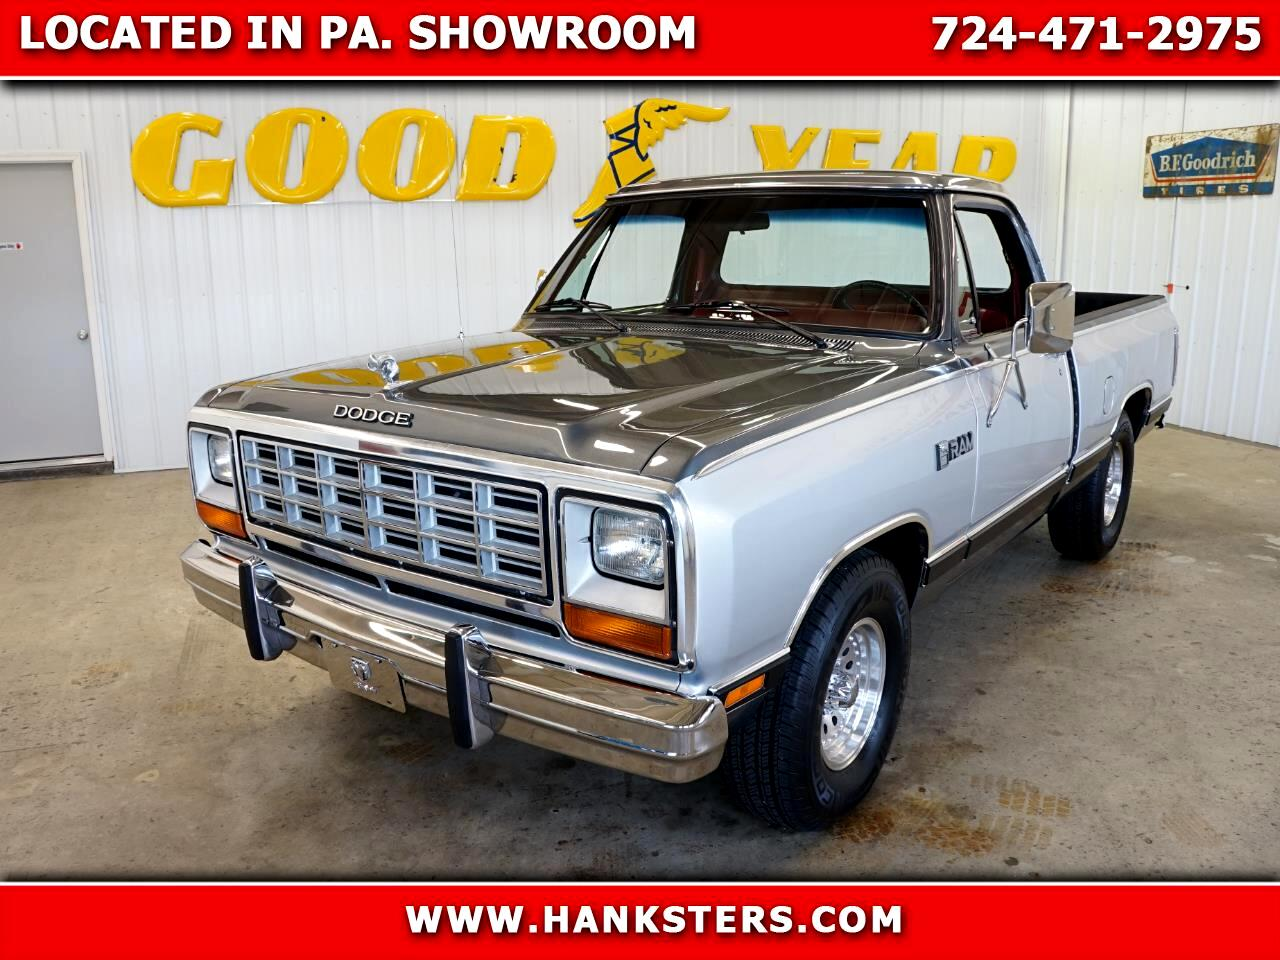 1985 Dodge RAM 150 Royal SE